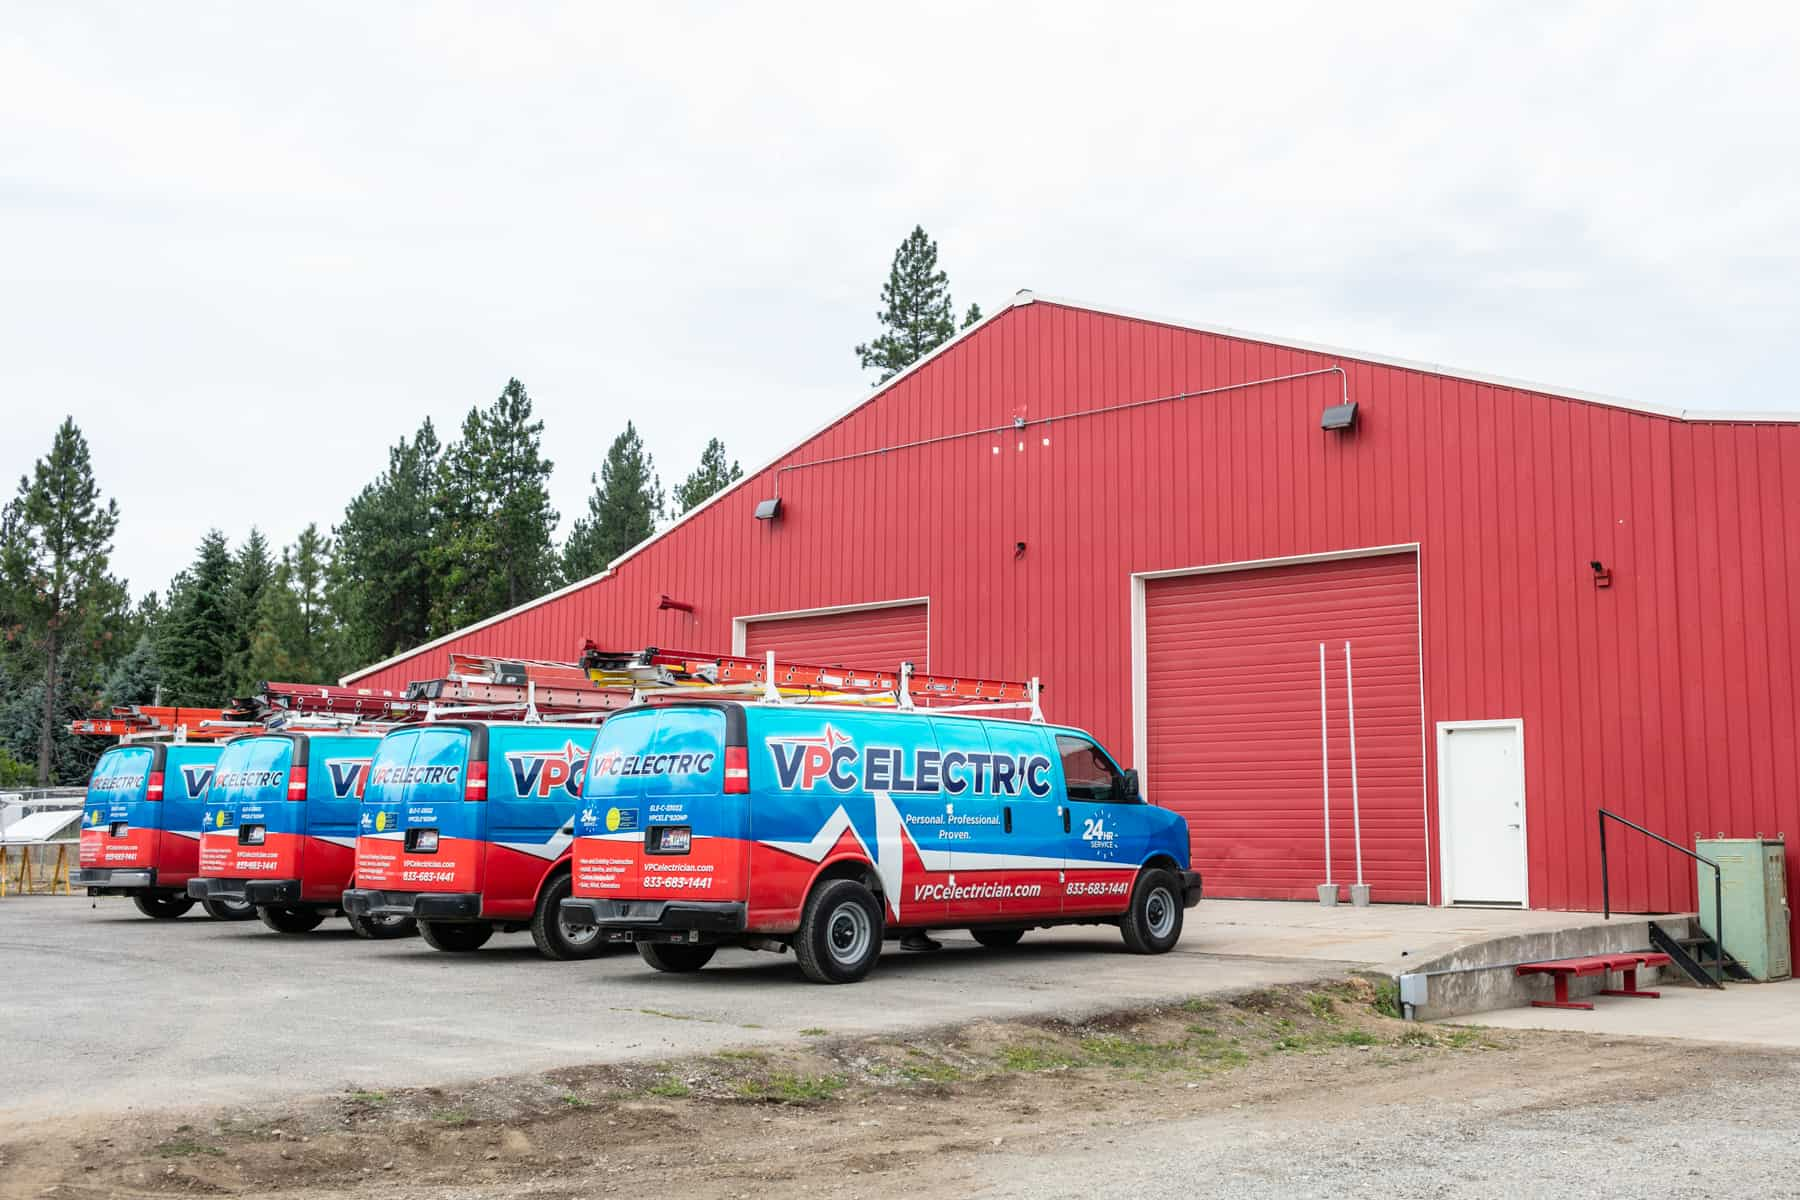 The fleet of residential electrician vans outside of VPC Electrics main office